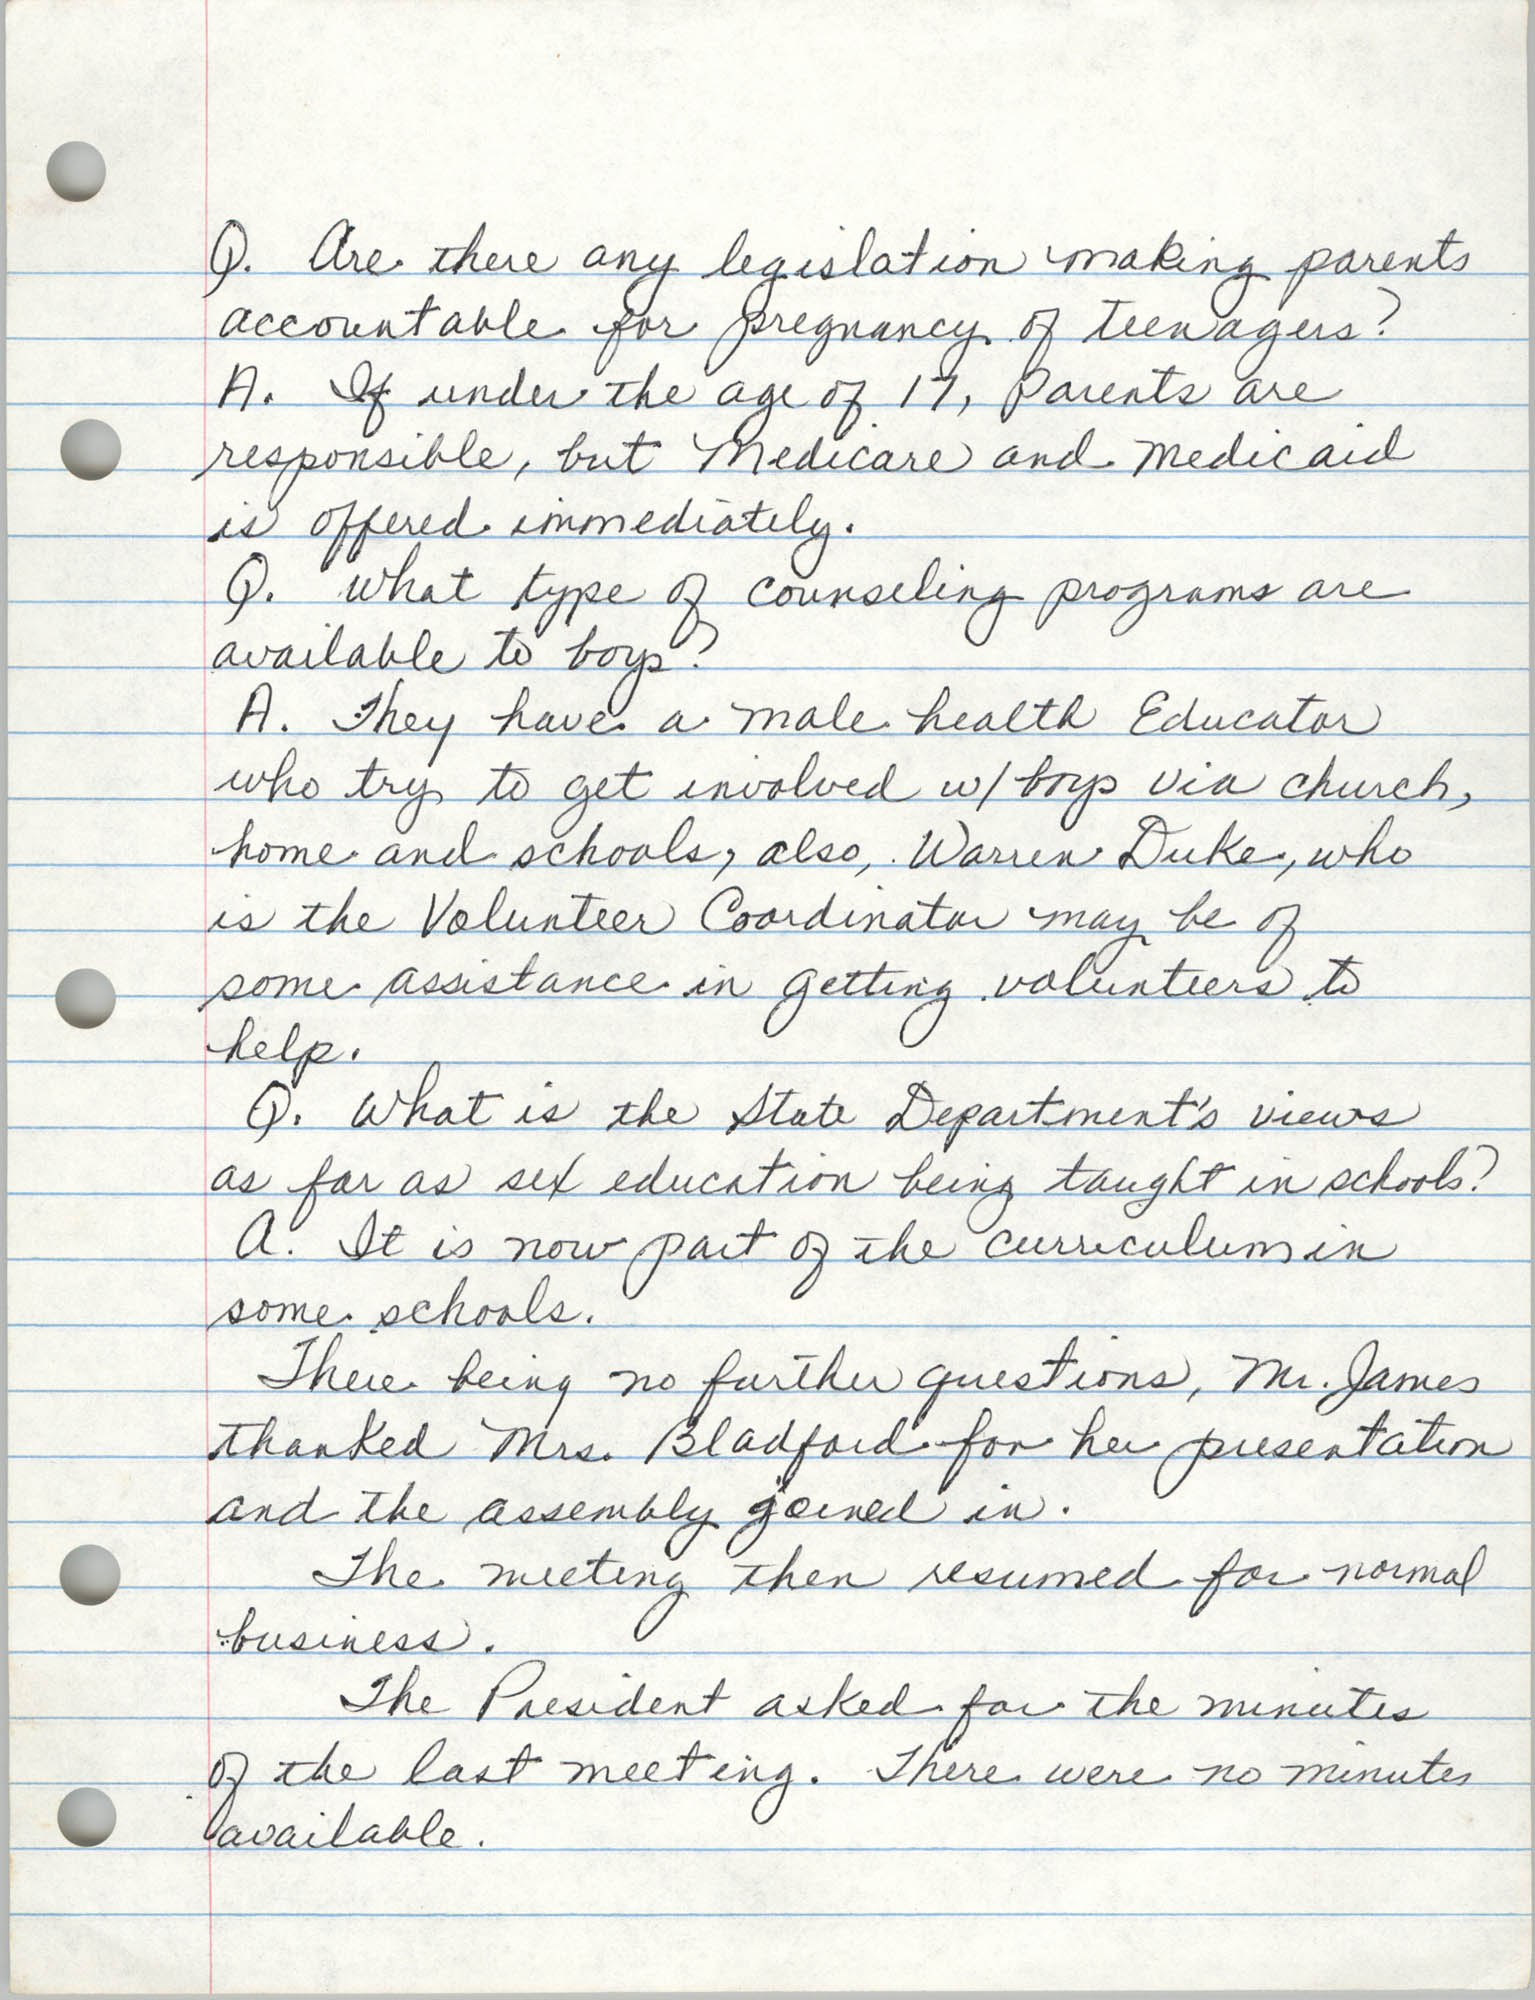 Minutes, Charleston Branch of the NAACP, General Membership Meeting, April 24, 1986, Page 4